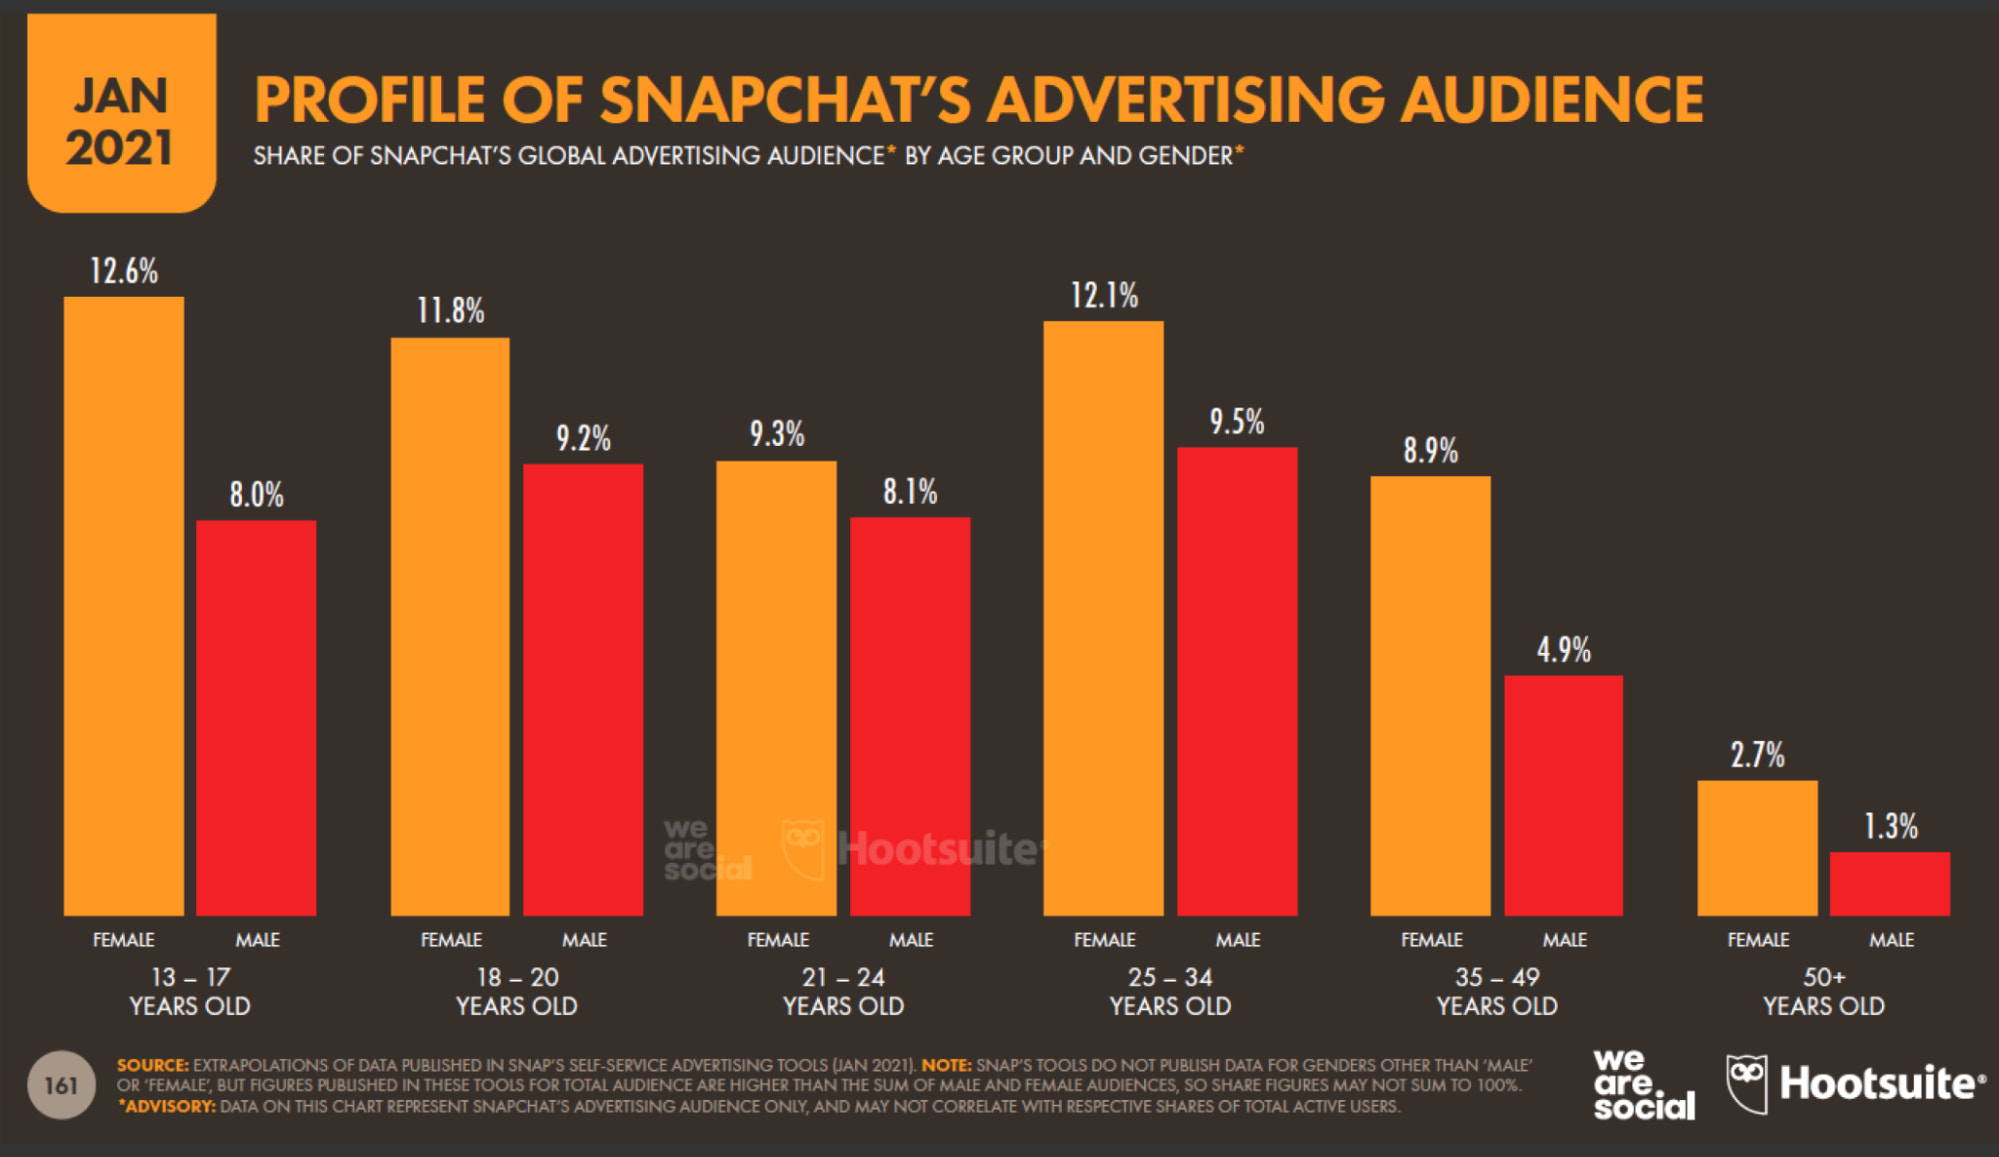 Snapchat's ad audience